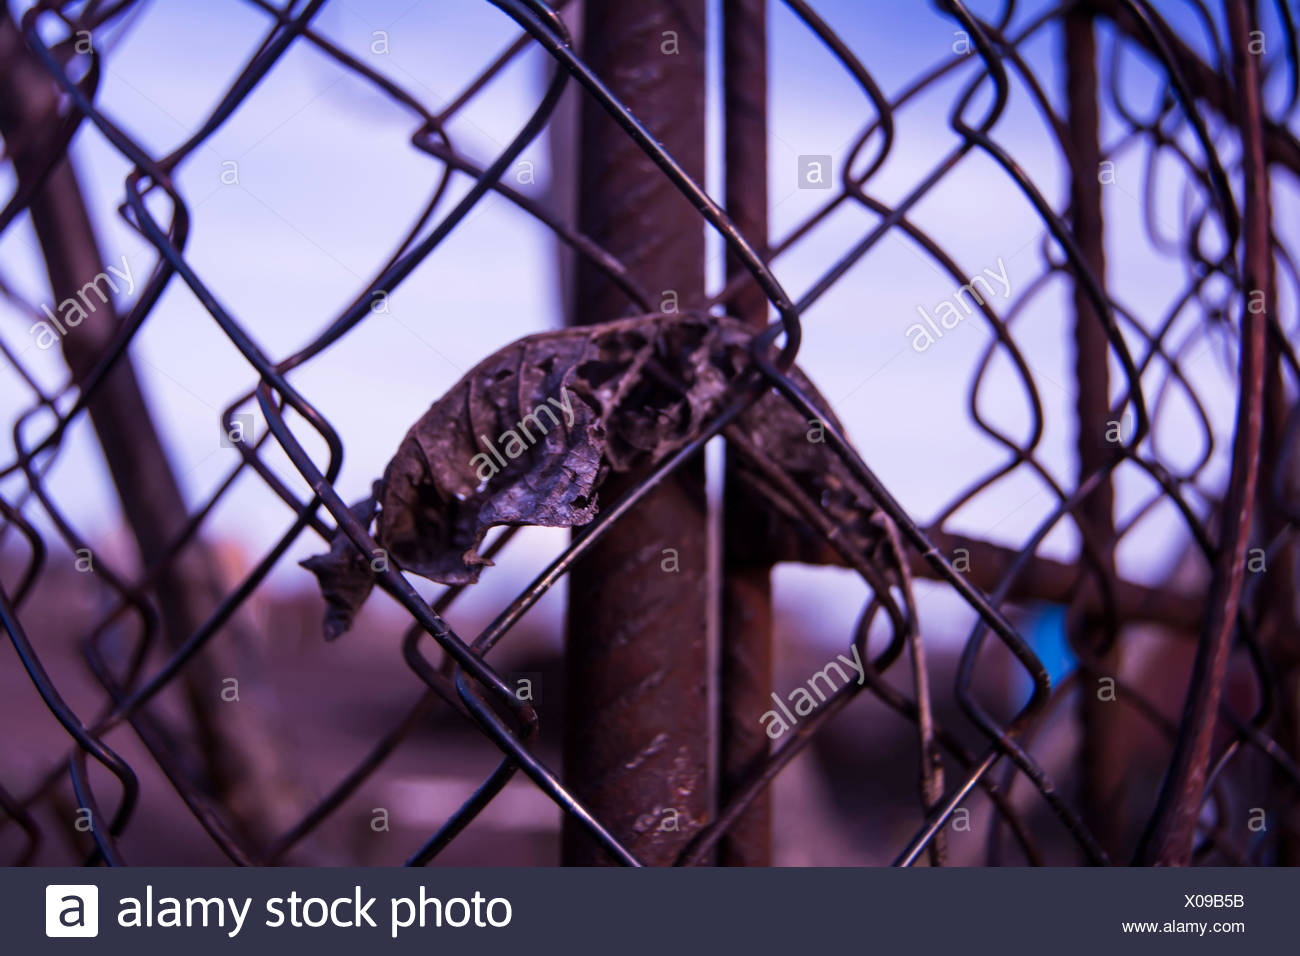 Stuck In The Fence Stockfotos & Stuck In The Fence Bilder - Alamy